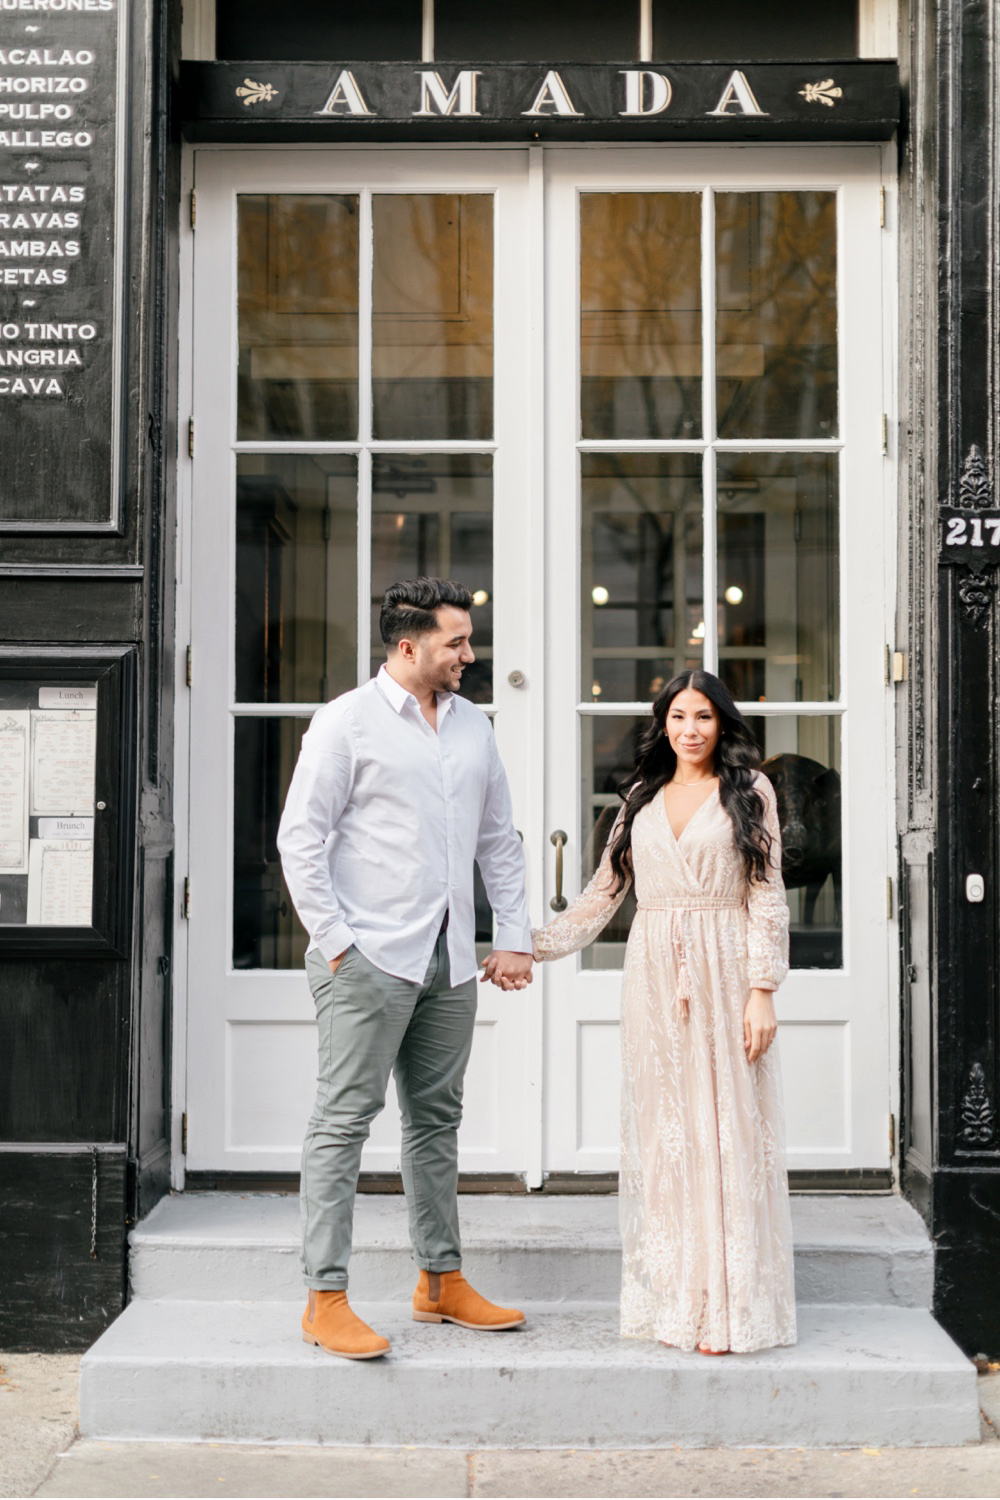 01 Milanee&Amine 072 Philadelphia Engagement Philadelphia Wedding Photographer Fine Art Wedding Photographer Light And Airy